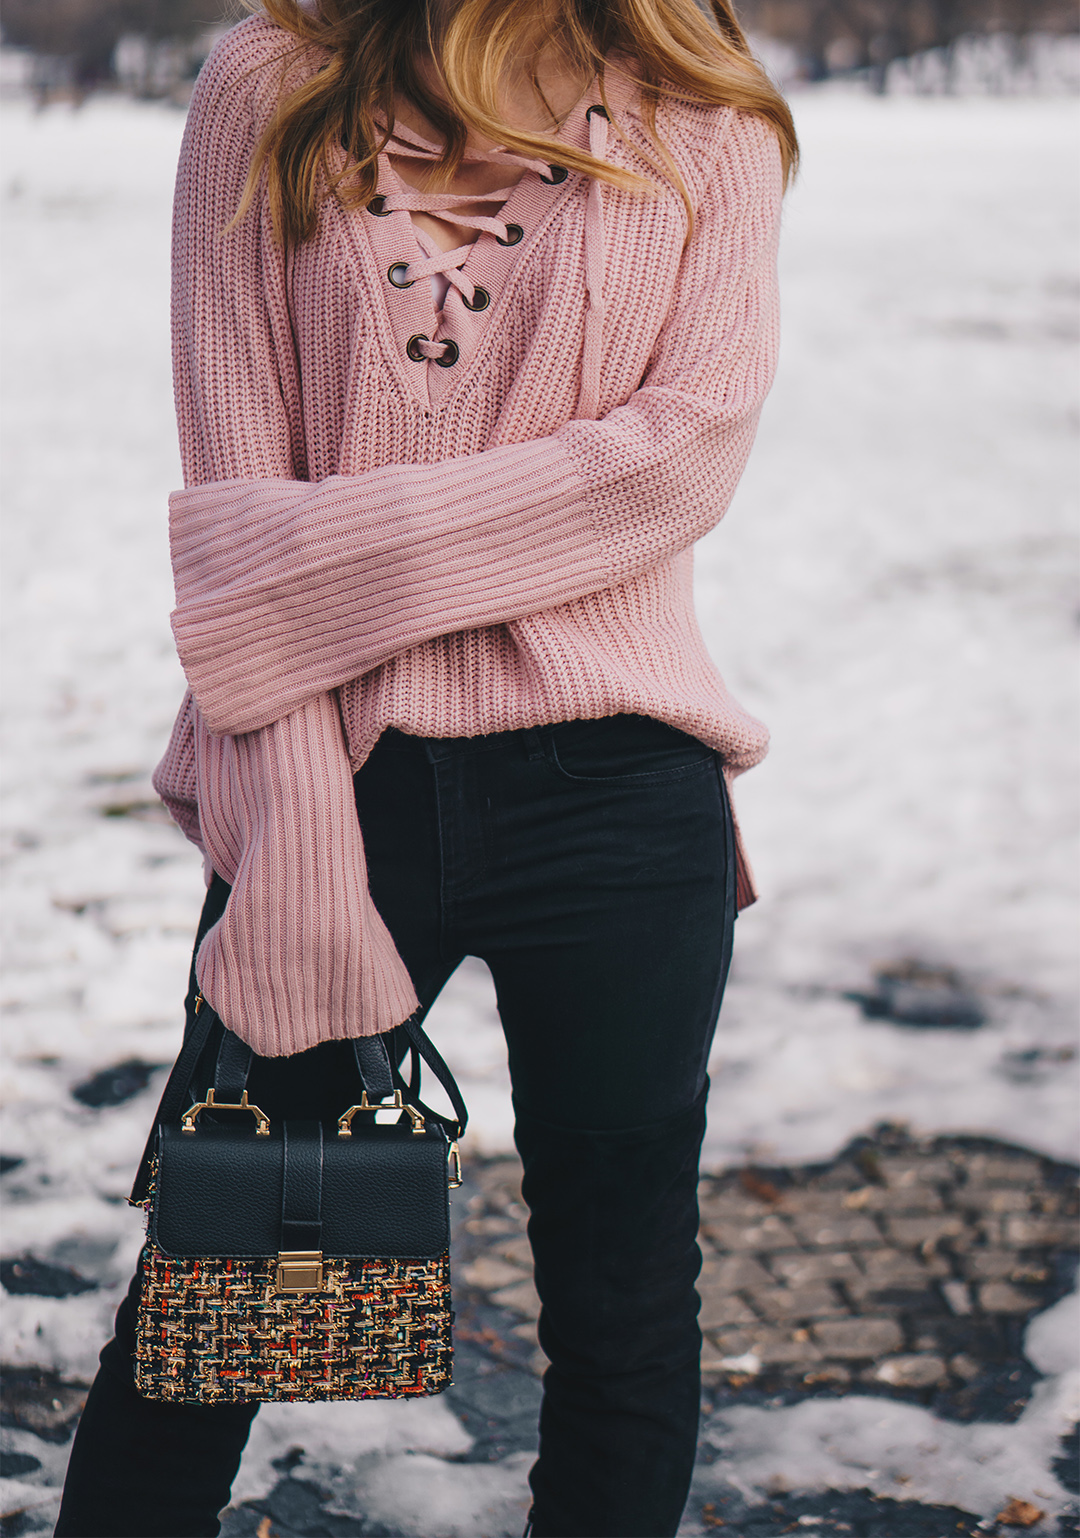 lace-up-sweater-winter-outfit-pink-wish (6)